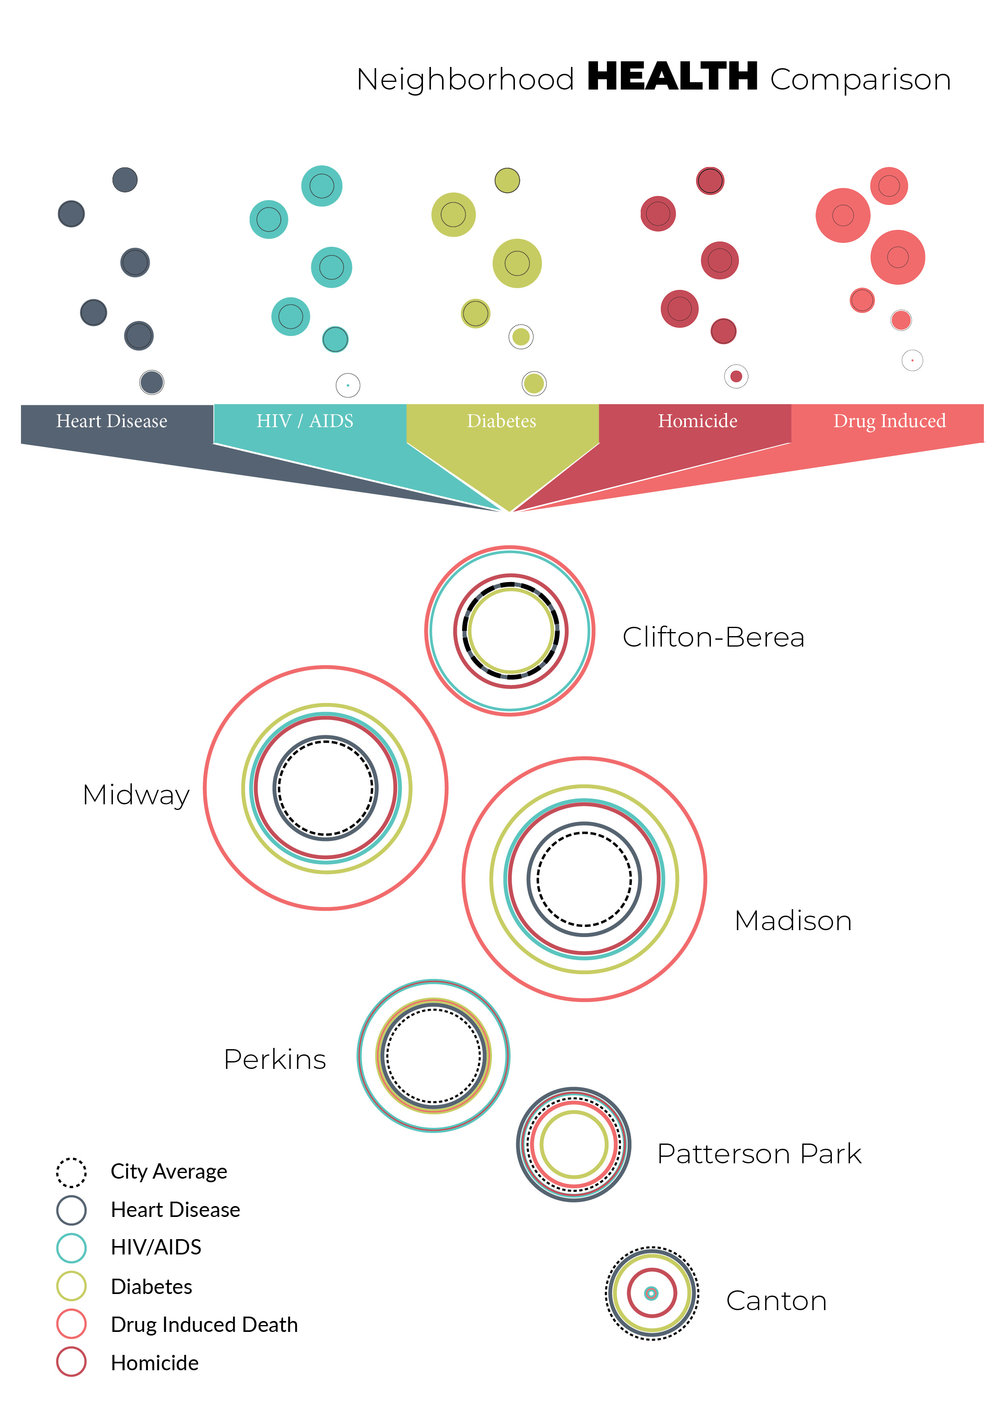 This poster uses circles (which mimic the geographic area of each neighborhood) to demonstrate the rates of death among five health indicators as compared to the city average. The top allows viewers to see the difference individually and the bottom combines them to demonstrate which indicators each neighborhood should focus on reducing.